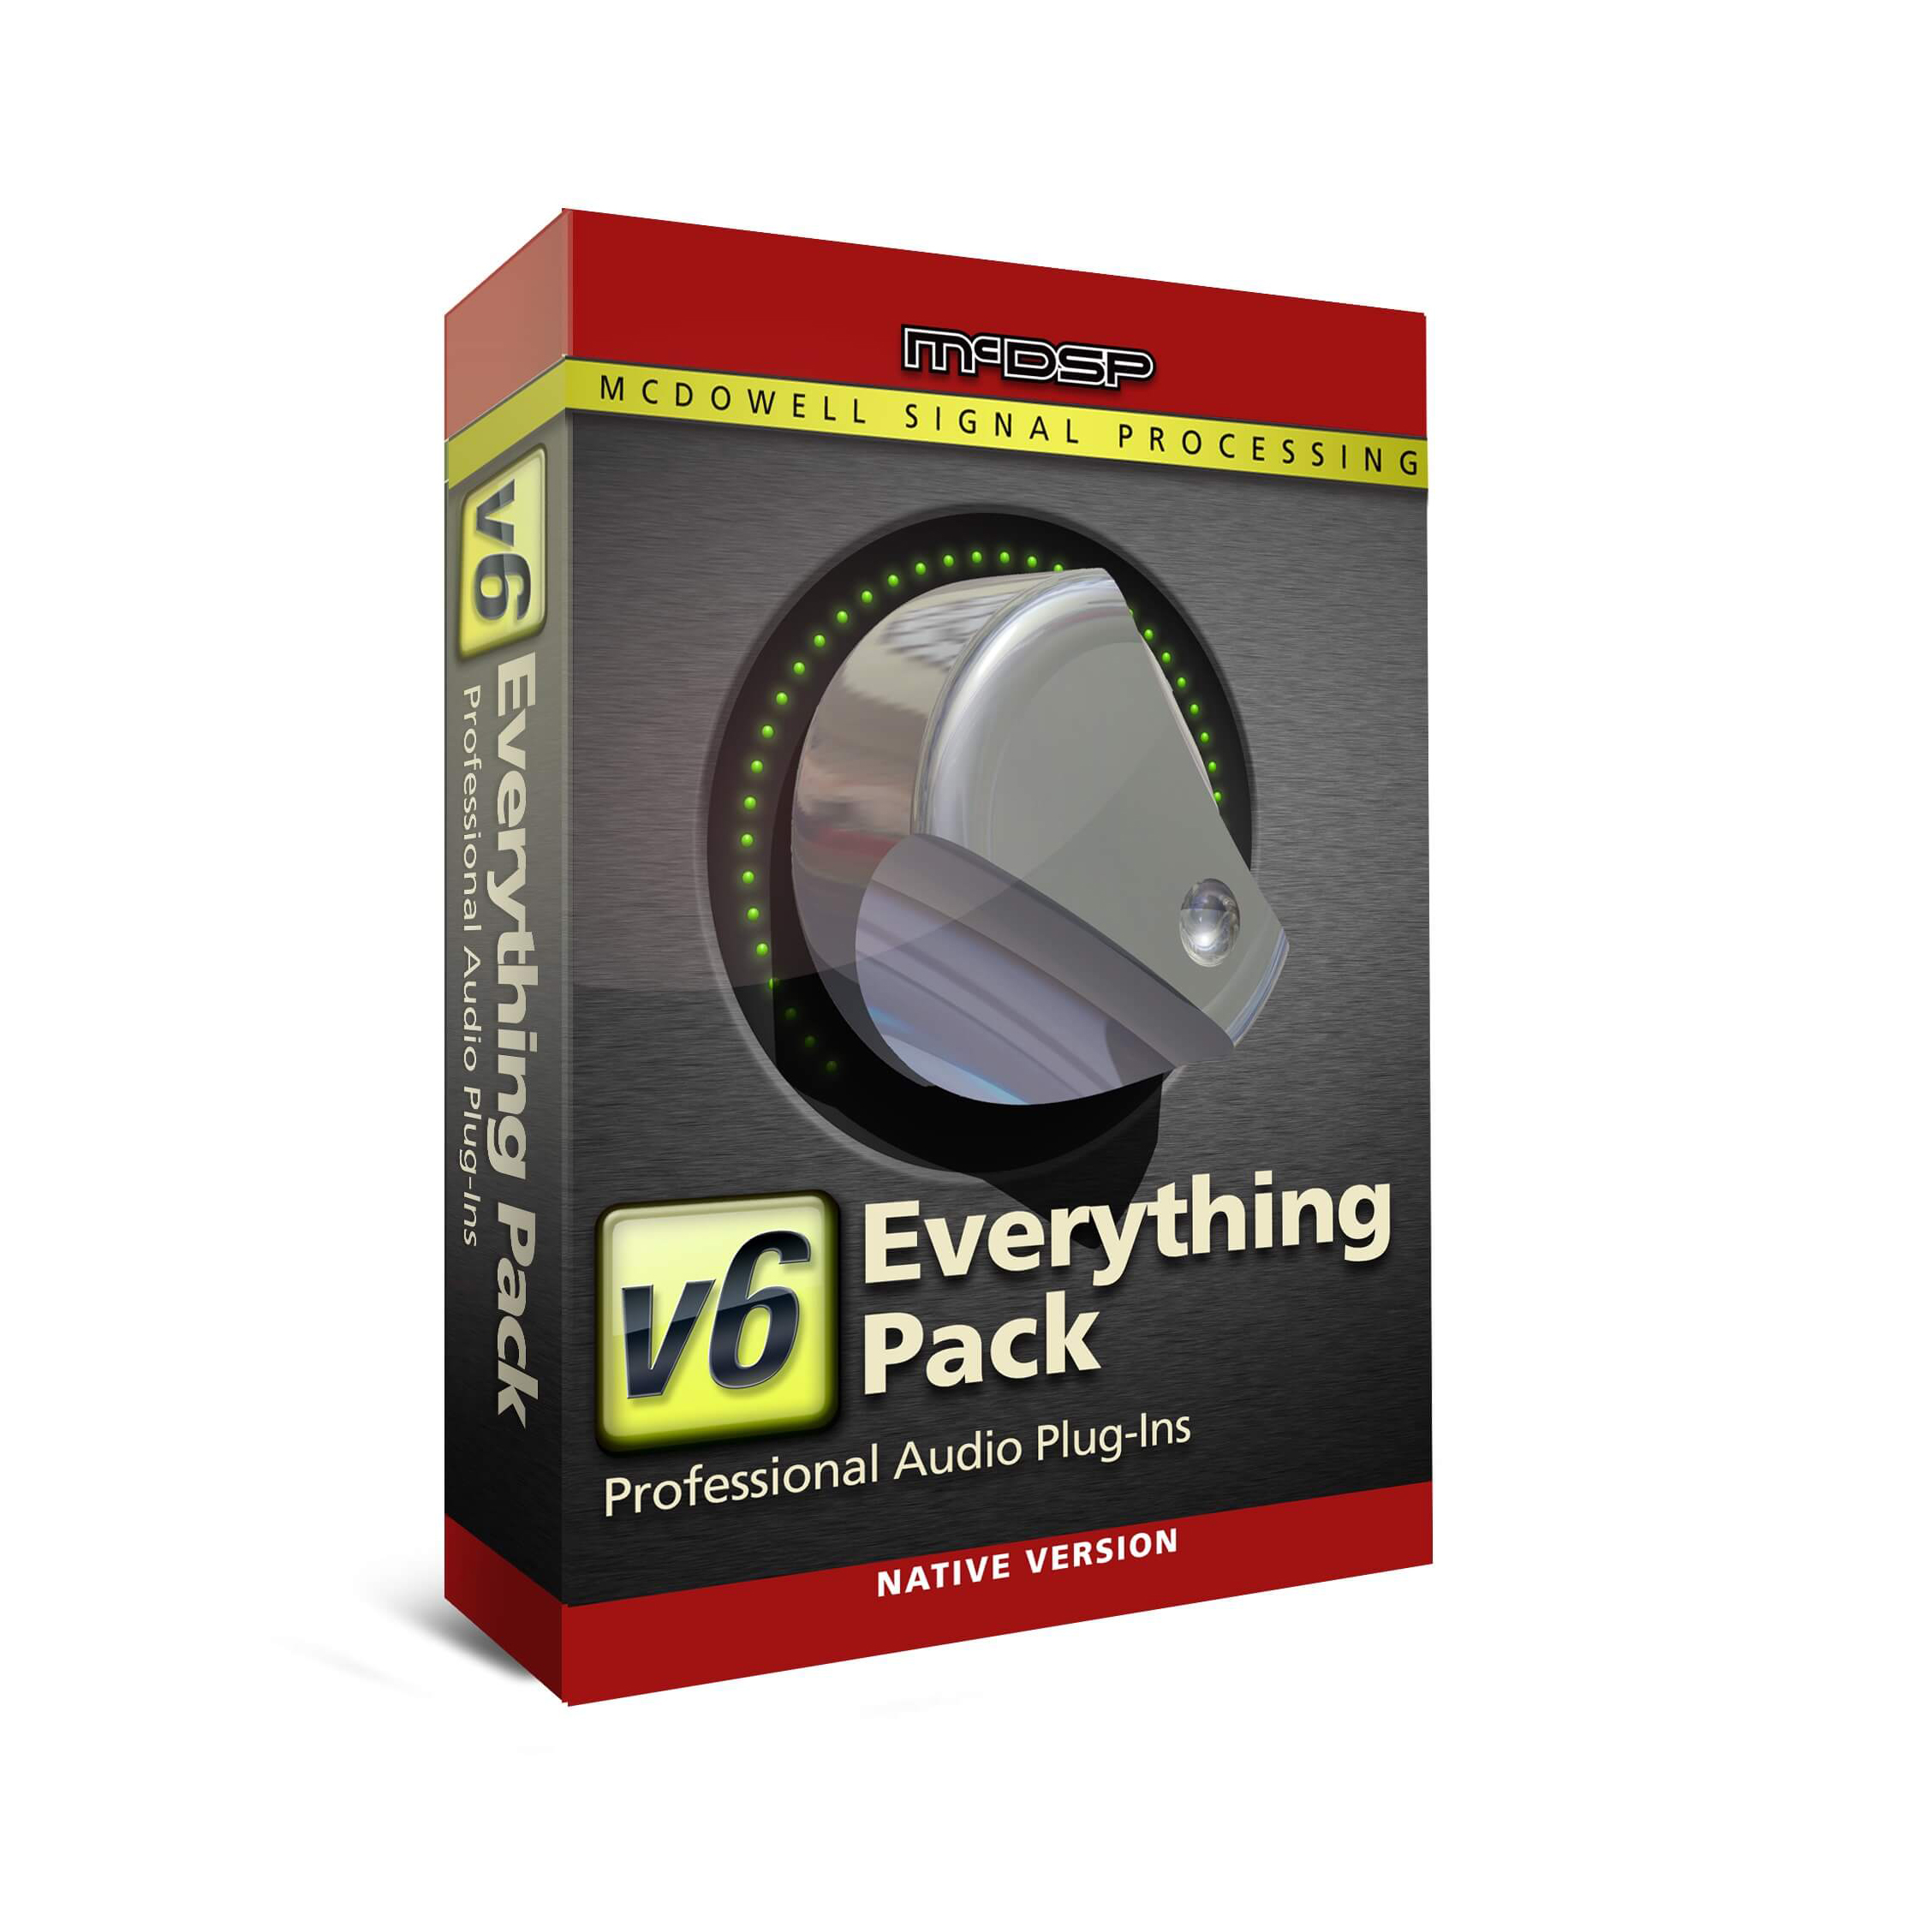 McDSP Everything Pack Native v6 4 (Upgrade From Any 2 McDSP Native Plug-Ins)